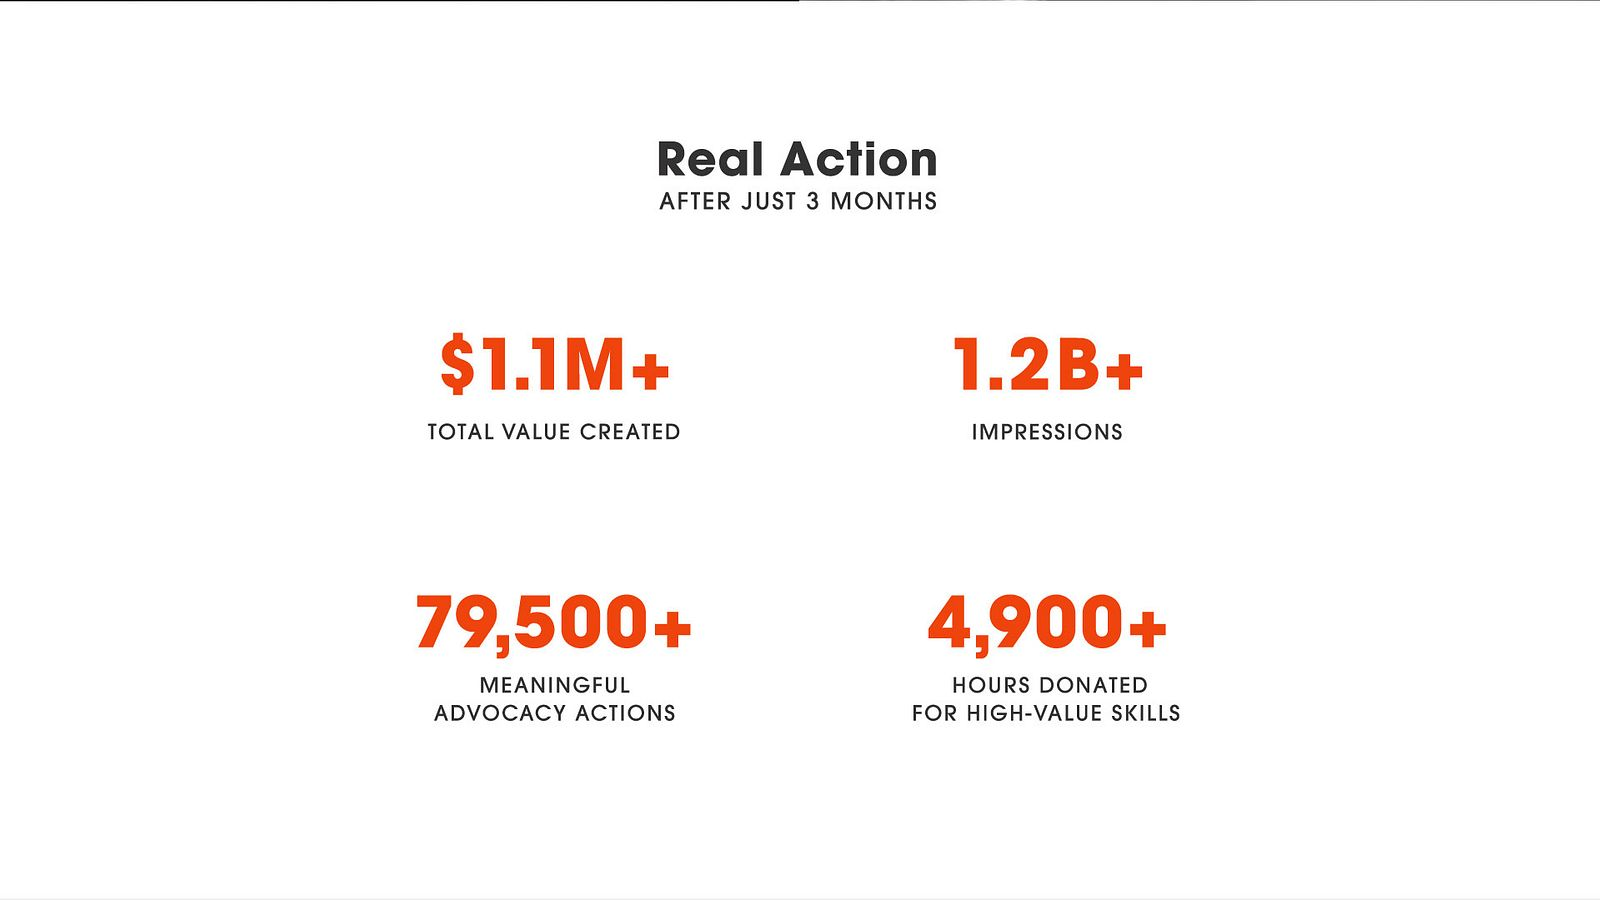 Statistics on impact 3 months after the launch of Patagonia Action Works: $1.1 million total value created; 1.2 billion impressions to date; 79500 meaningful advocacy actions; 4900 hours donated for high-value skills.